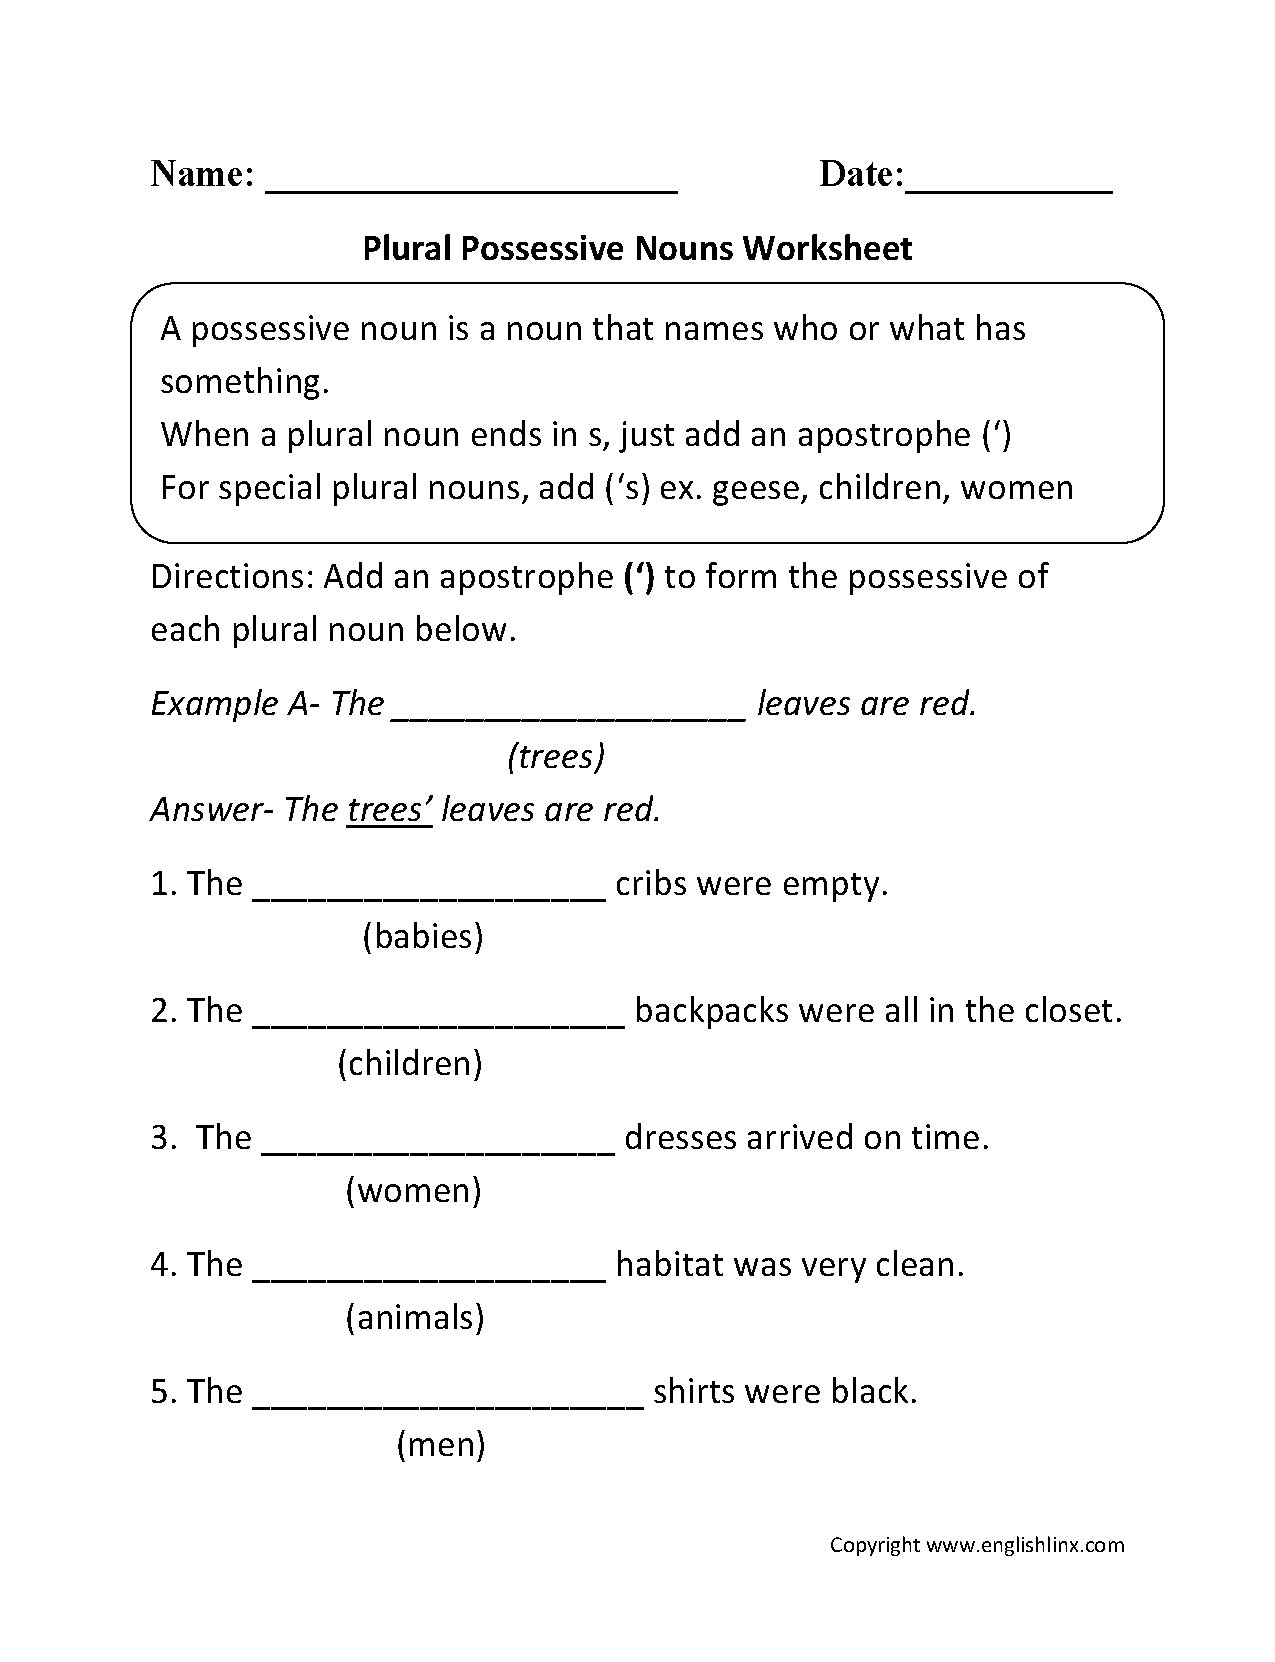 Aldiablosus  Marvellous Nouns Worksheets  Possessive Nouns Worksheets With Hot Possessive Nouns Worksheets With Breathtaking Cell Drawing Worksheet Also Excel  Worksheet In Addition Coloring By Number Worksheet And Grade  Pattern Worksheets As Well As Worksheets For Nursery Students Additionally Math Worksheets Algebraic Expressions From Englishlinxcom With Aldiablosus  Hot Nouns Worksheets  Possessive Nouns Worksheets With Breathtaking Possessive Nouns Worksheets And Marvellous Cell Drawing Worksheet Also Excel  Worksheet In Addition Coloring By Number Worksheet From Englishlinxcom